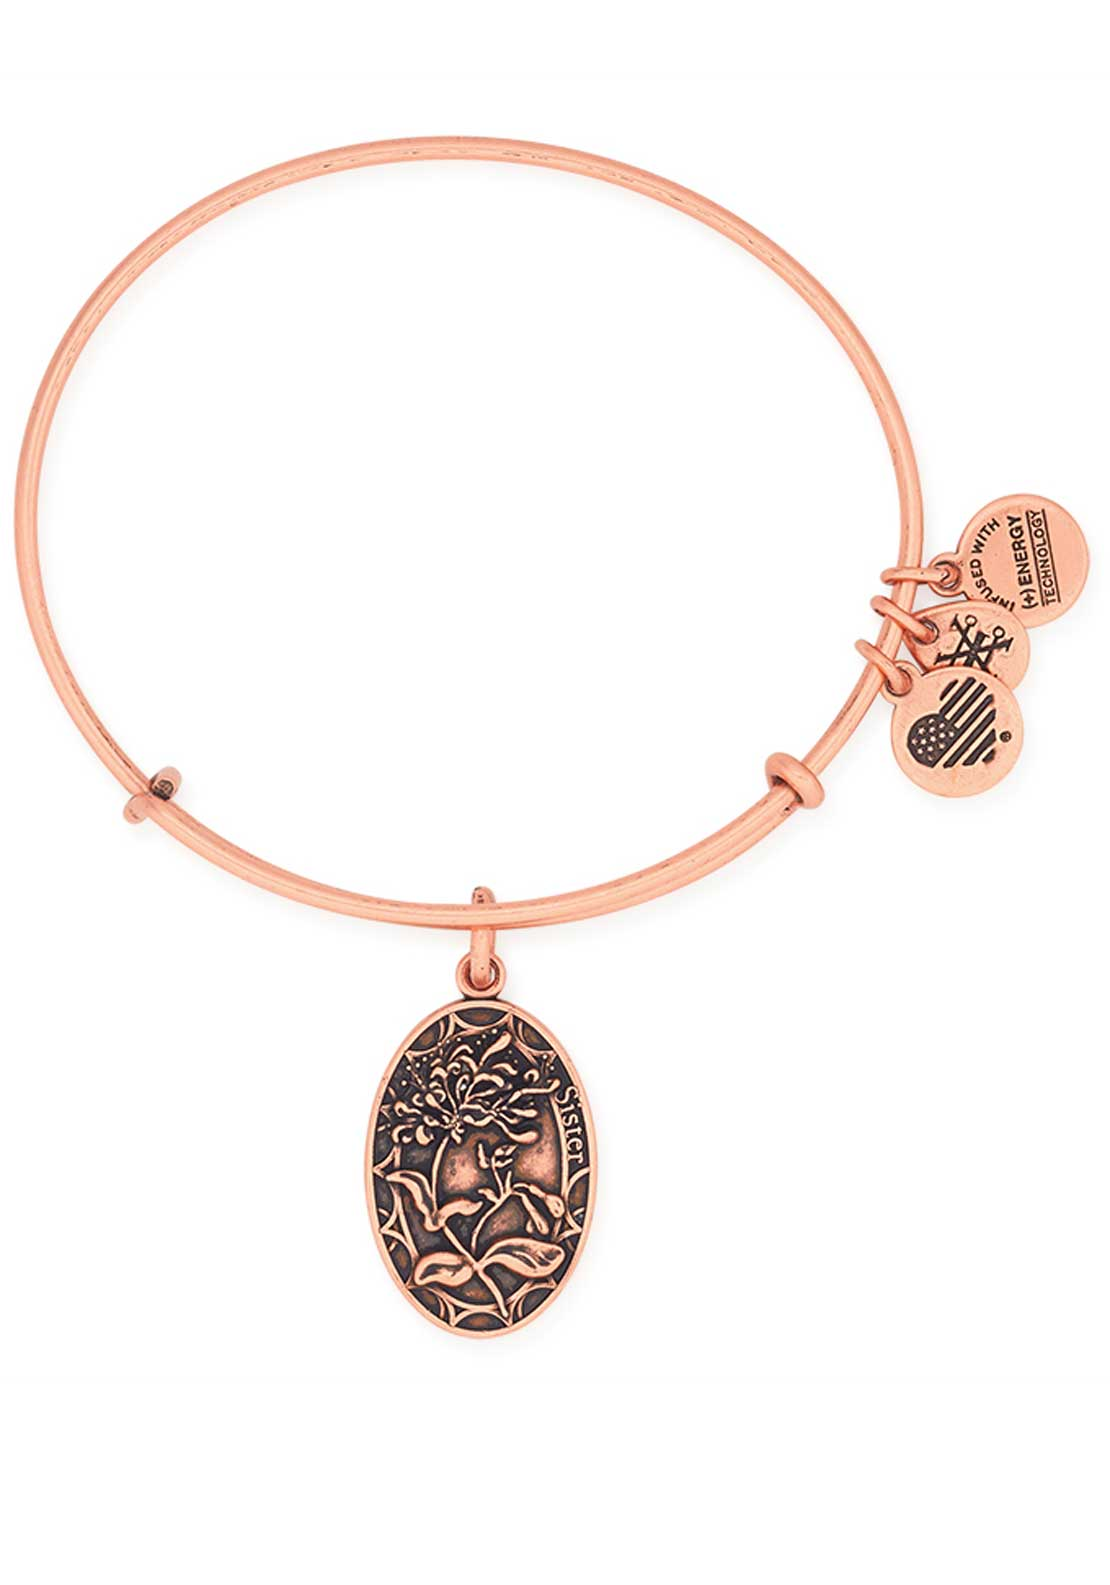 Alex and Ani Because I love you Sister Honeysuckle Bracelet, Rose Gold